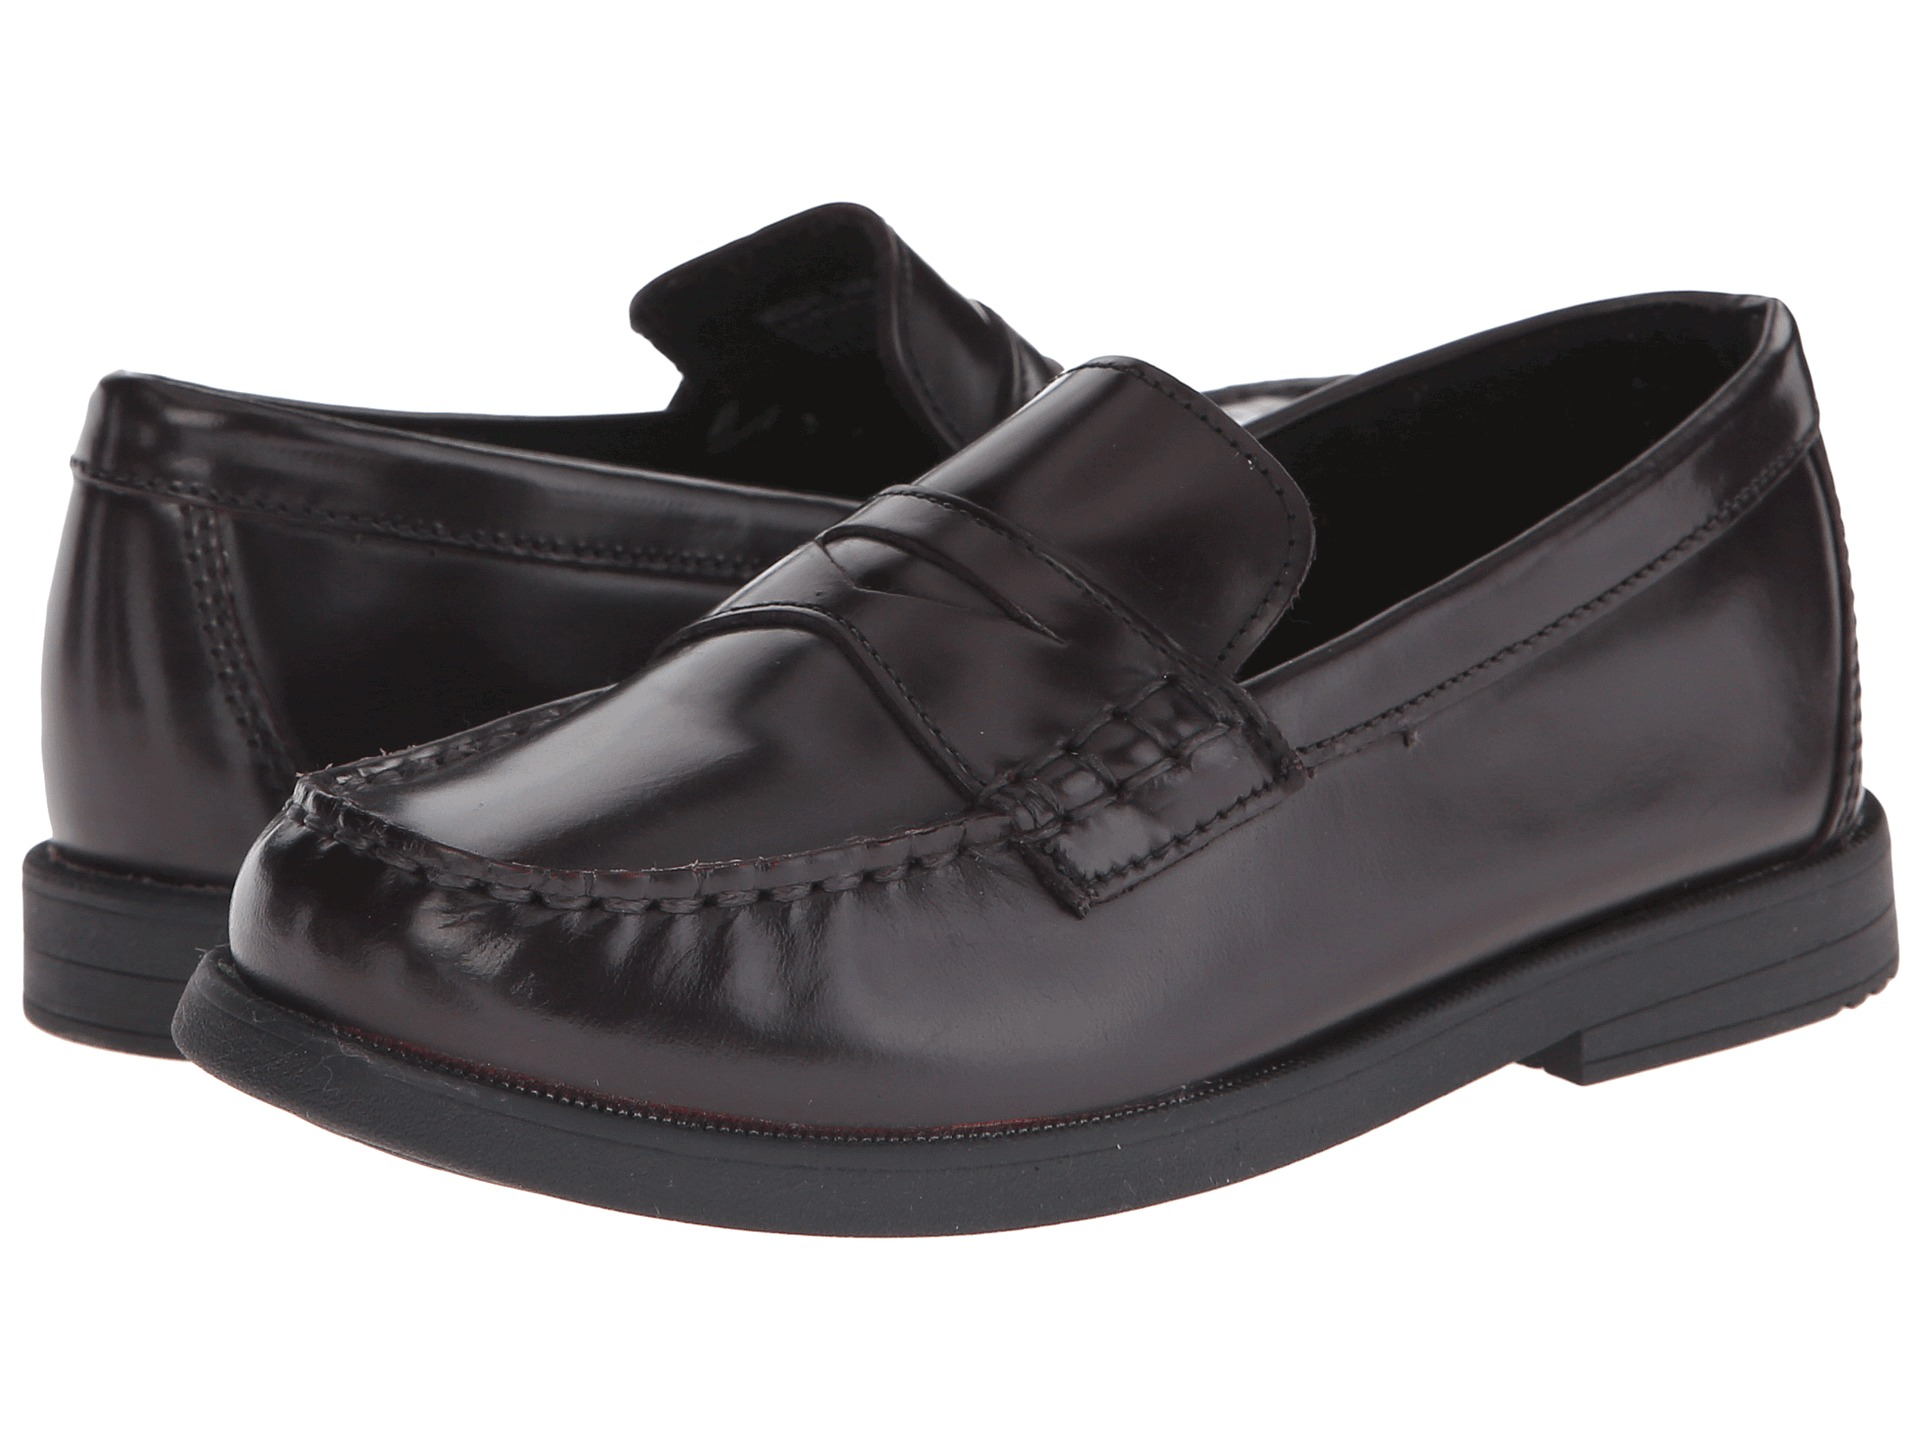 Shop for boys' dress shoes online at DSW, where we feature classic dress shoe styles for boys like oxfords, wingtips, loafers, and more.